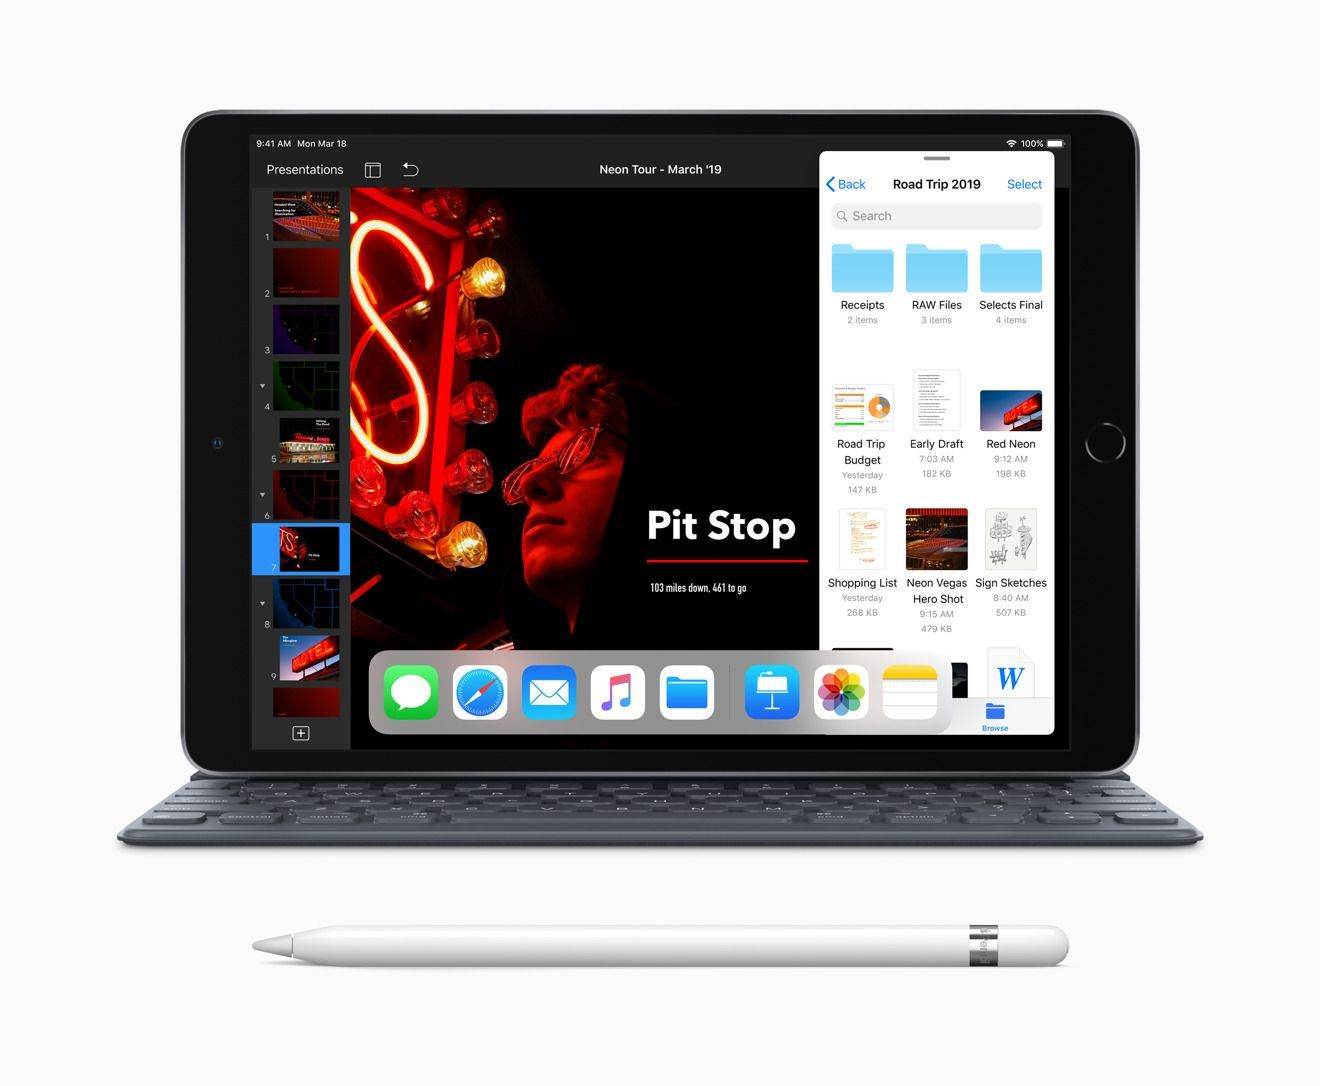 Apple debuts 2019 iPad Air with A12 Bionic chip and